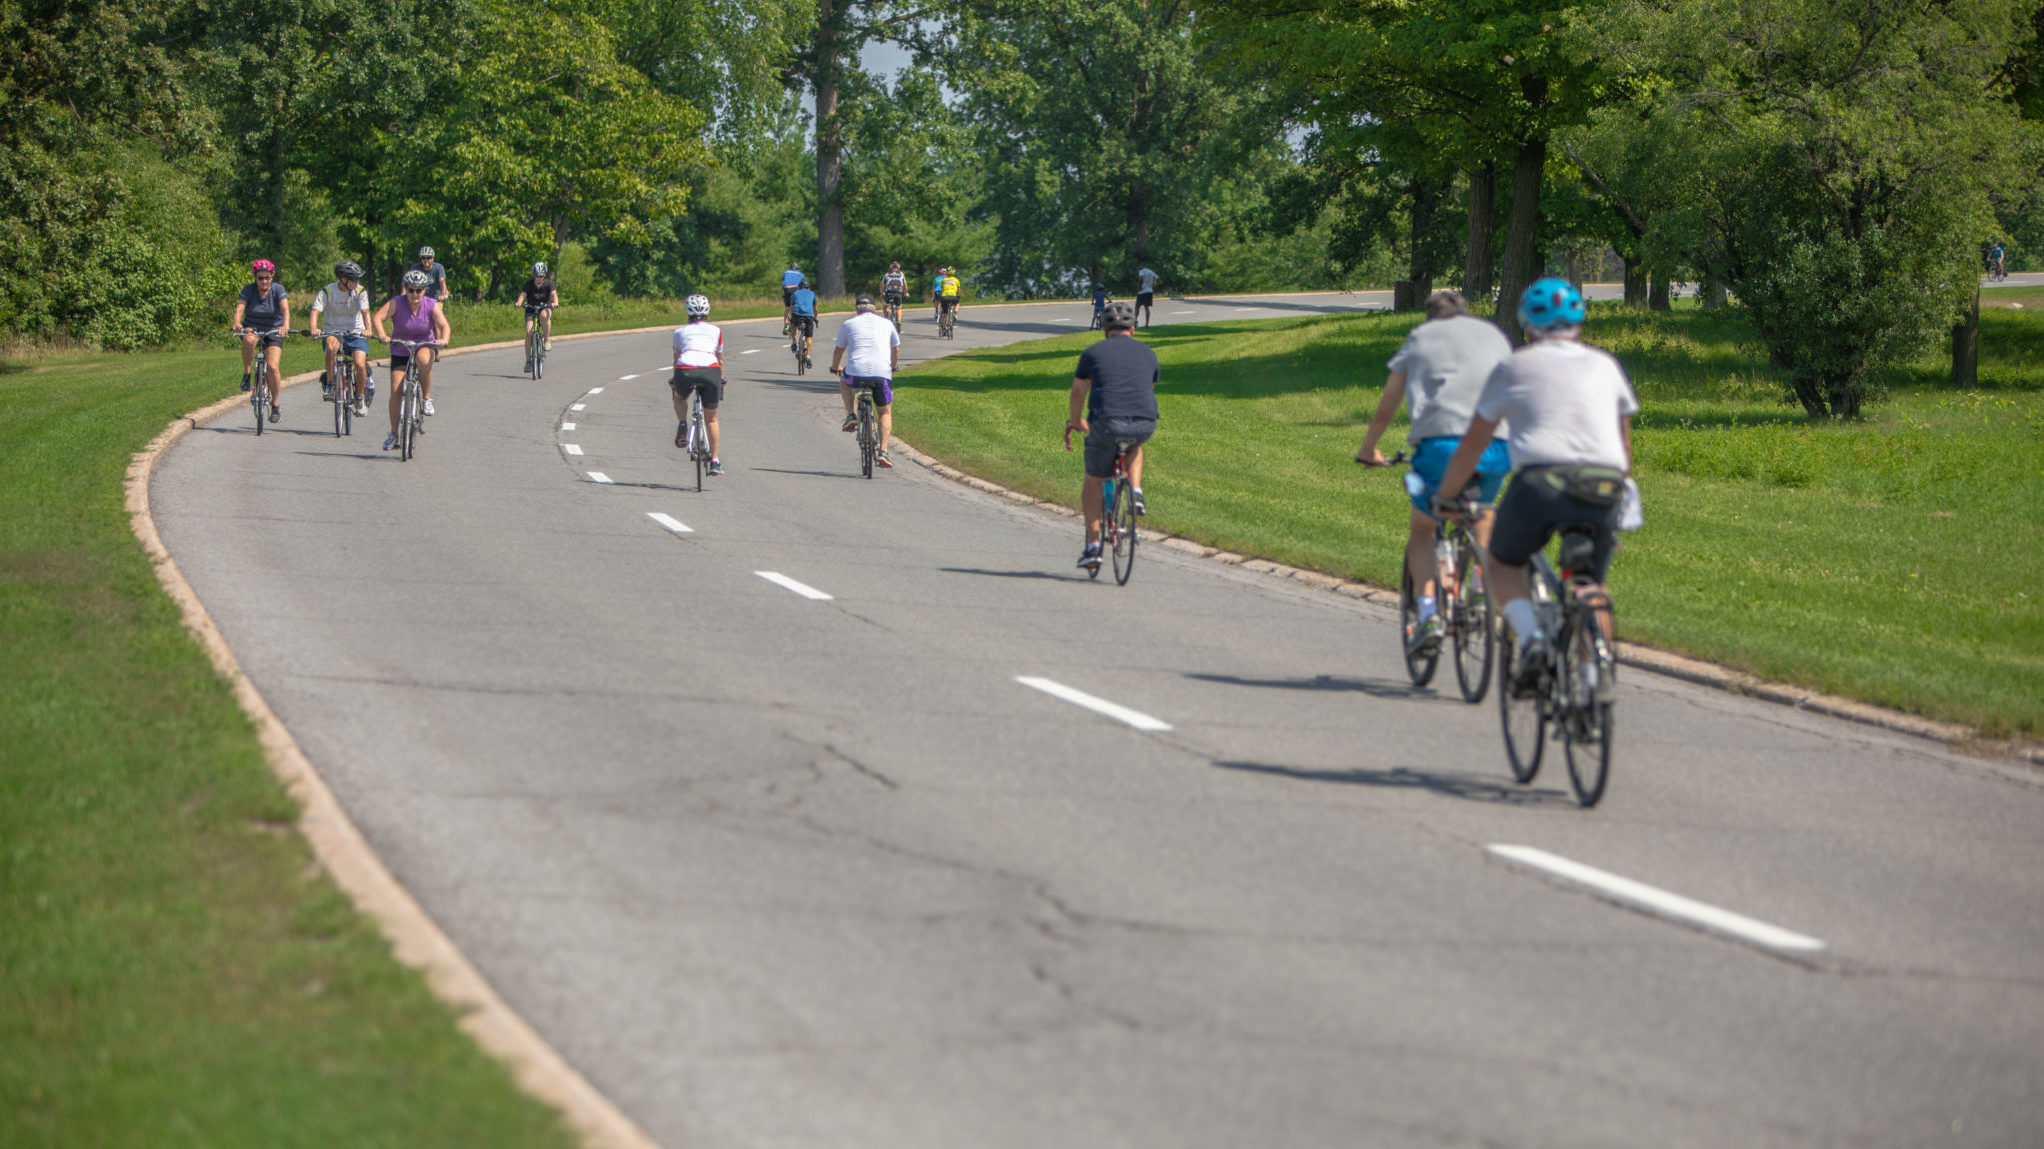 Cyclists on the parkway on a summer day